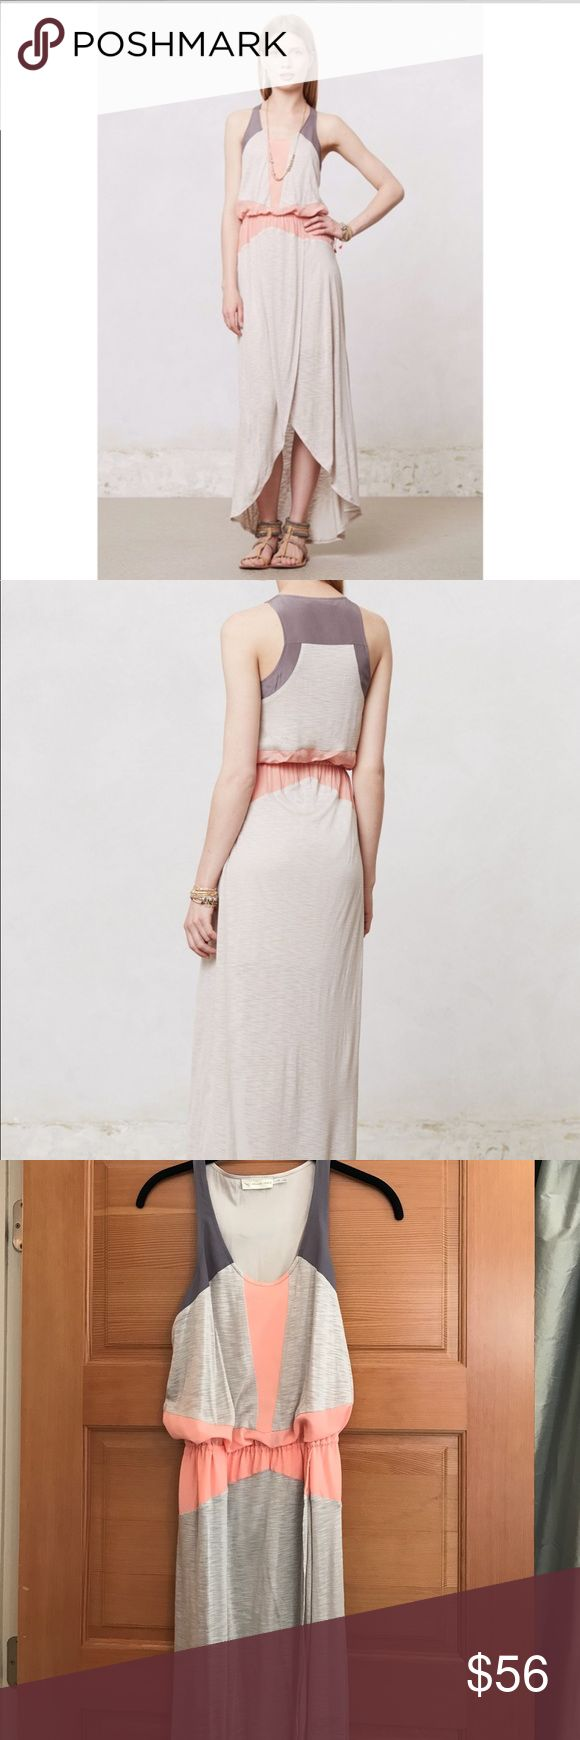 Anthropologie brand: The Addison Story maxi dress Anthropologie brand: The Addison Story maxi dress the addison story Dresses Maxi